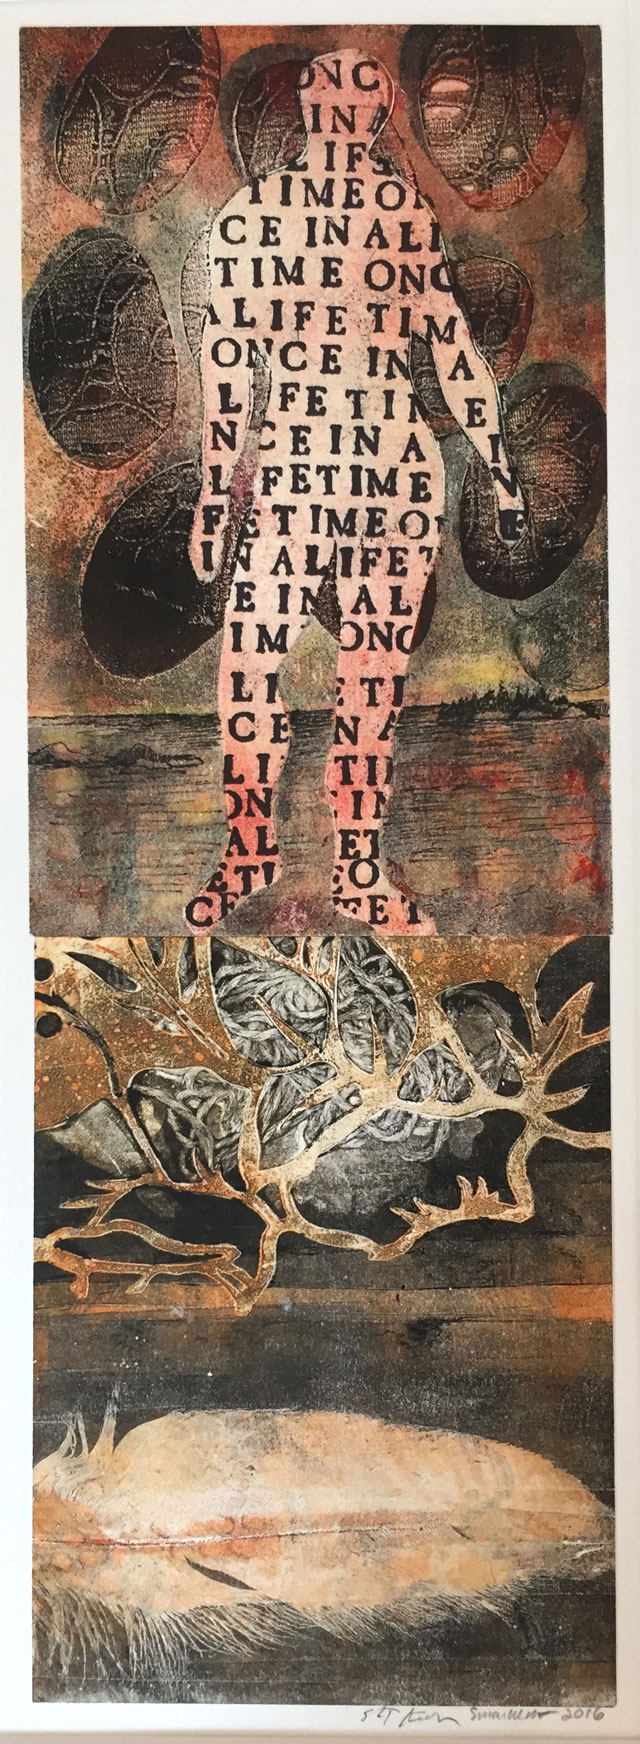 Susan Webster (image), Stuart Kestenbaum (text), Once in a Lifetime, 2016. Monotype, letter stamps, on paper, 15 x 36 cm (6 x 14 in). © the artists.